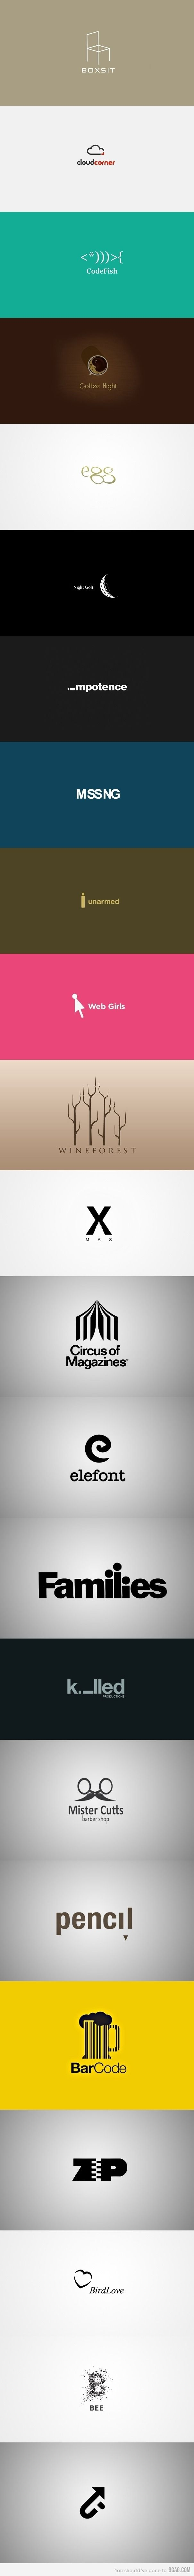 A collection of logos with great visual metaphors.